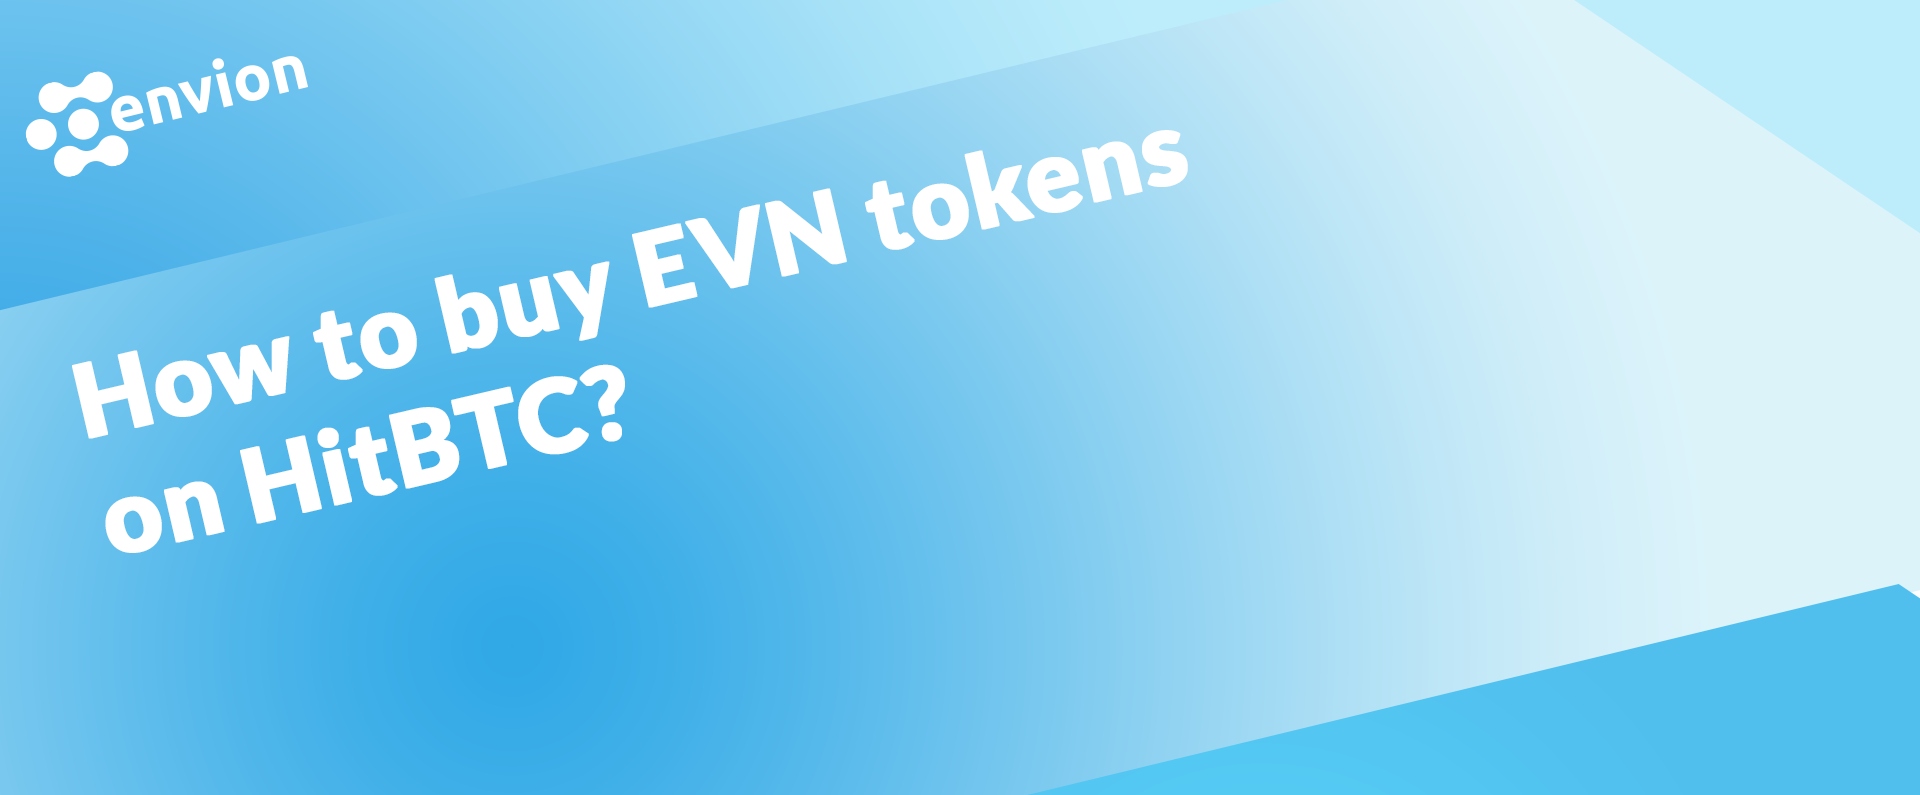 Guide how to buy evn tokens on hitbtc envion medium ccuart Images